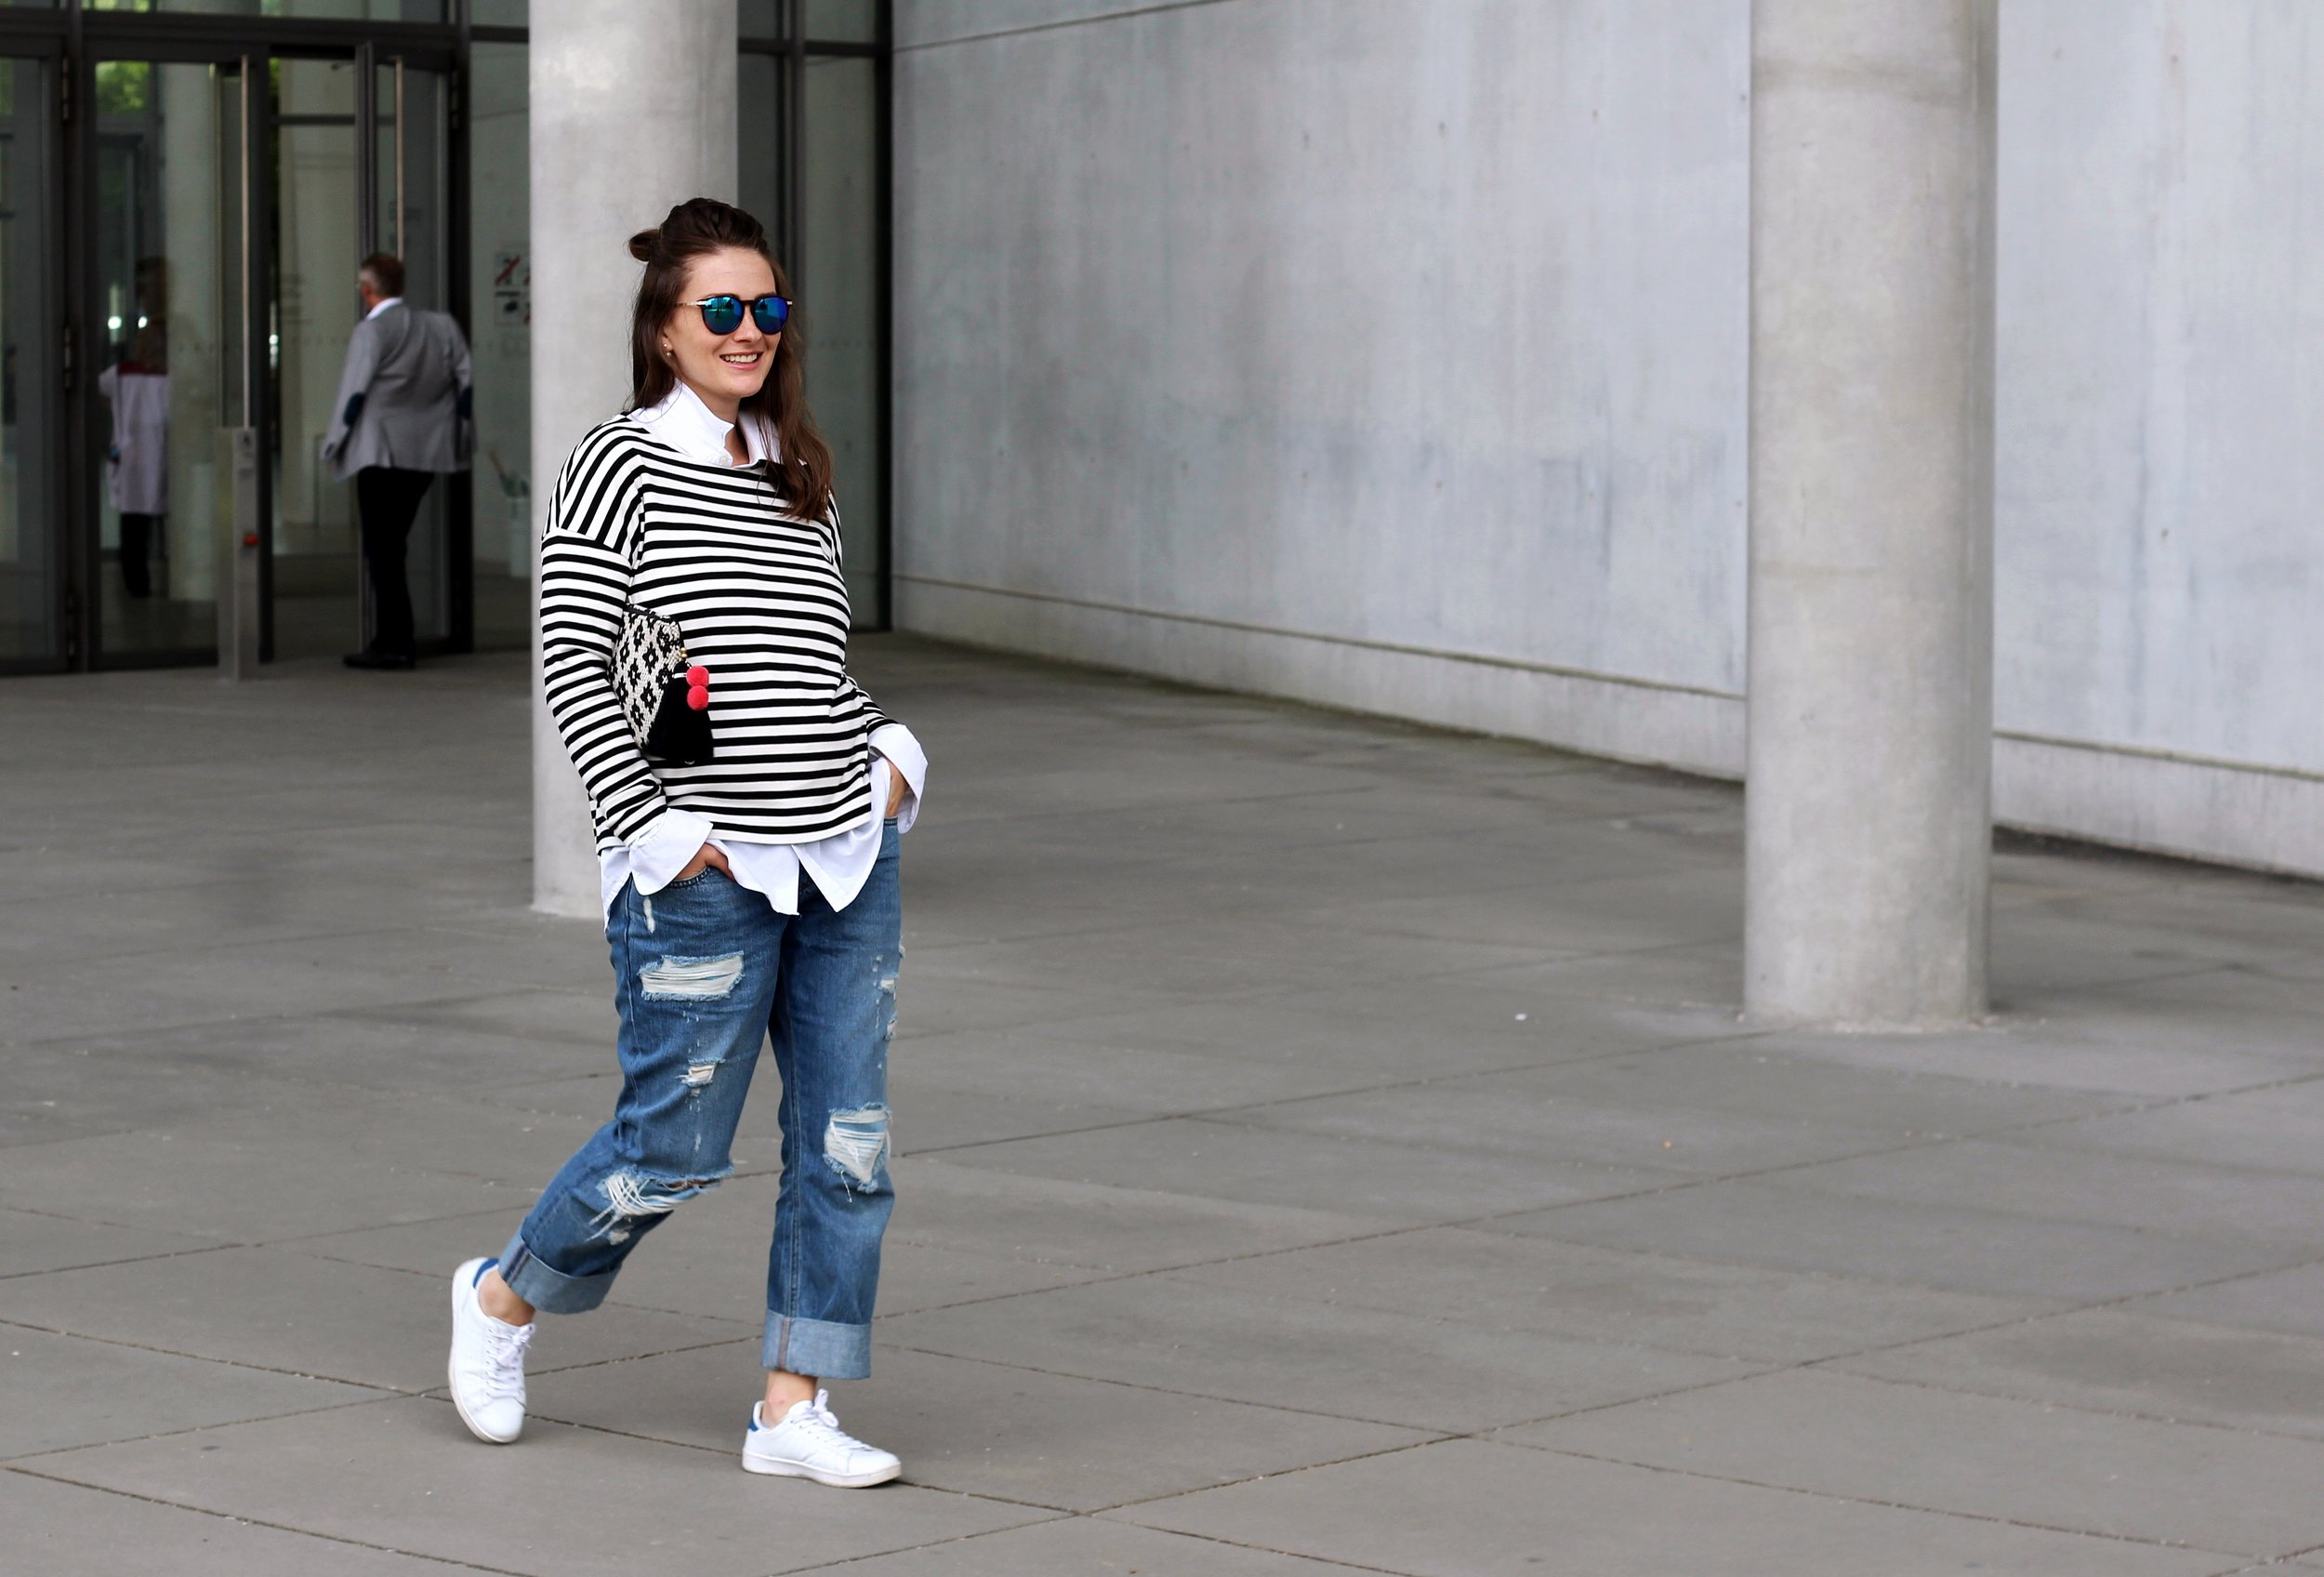 annaporter-classic-outfit-look-jeans-stripes-white-sneakers-asos-mango-clutch-1